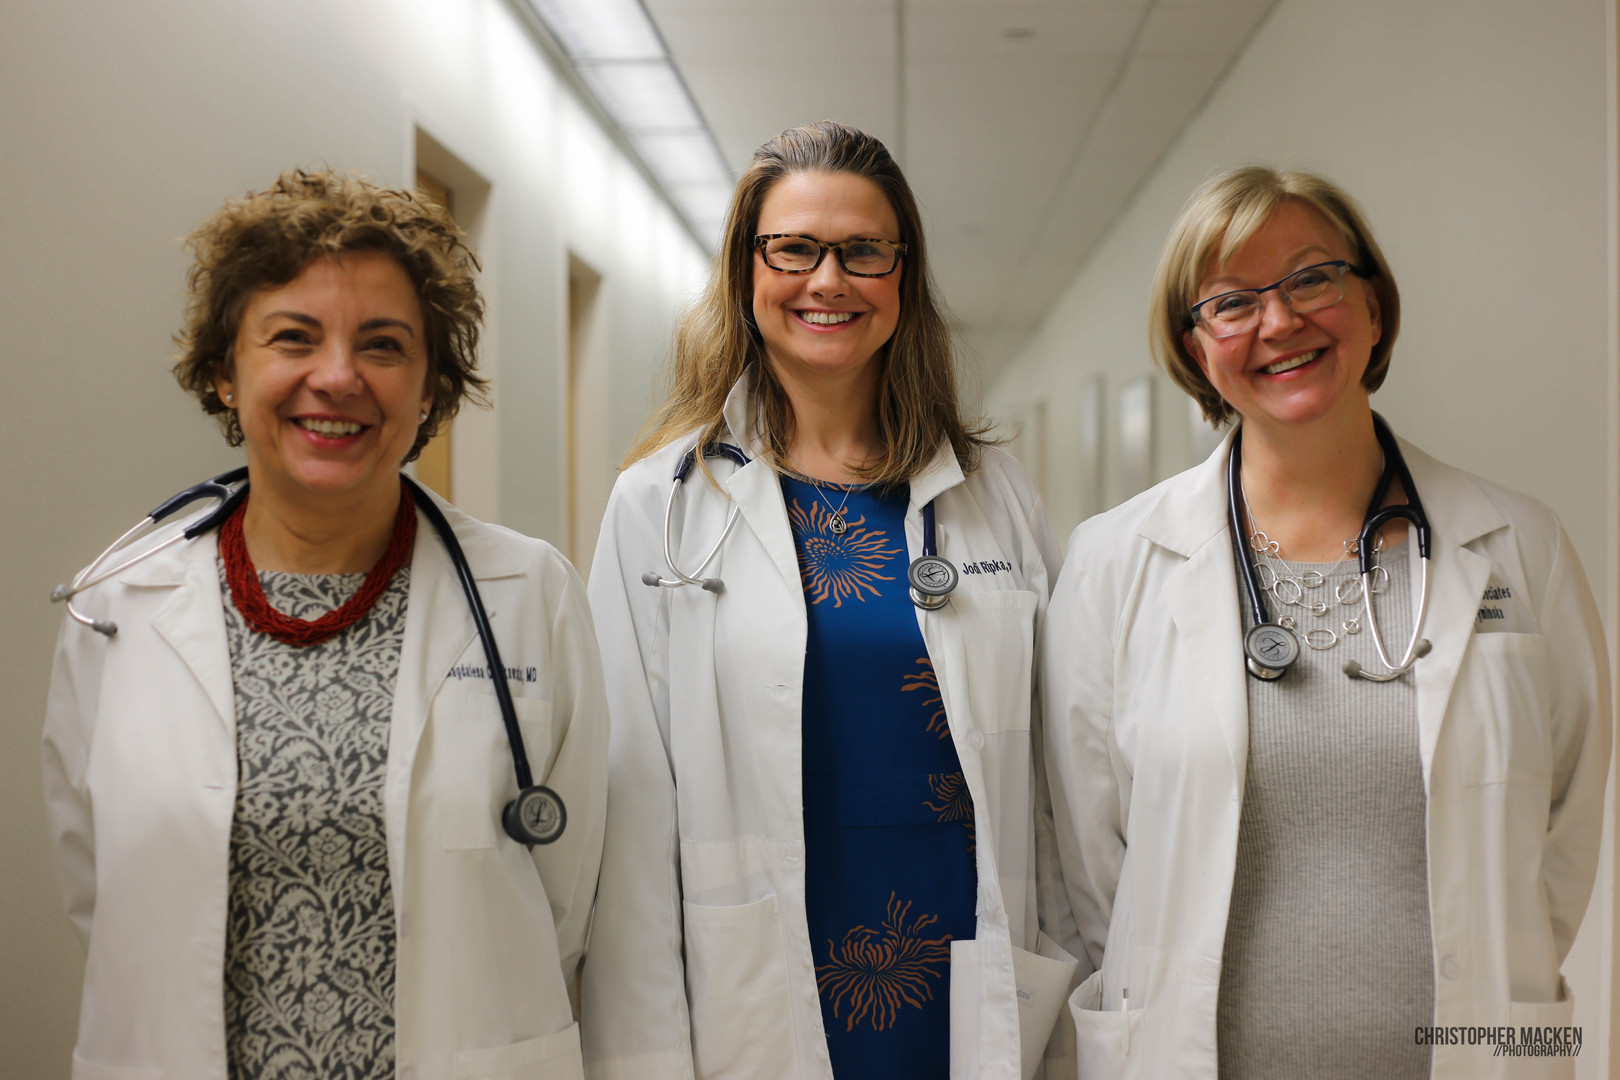 Our Primary Care Physicians